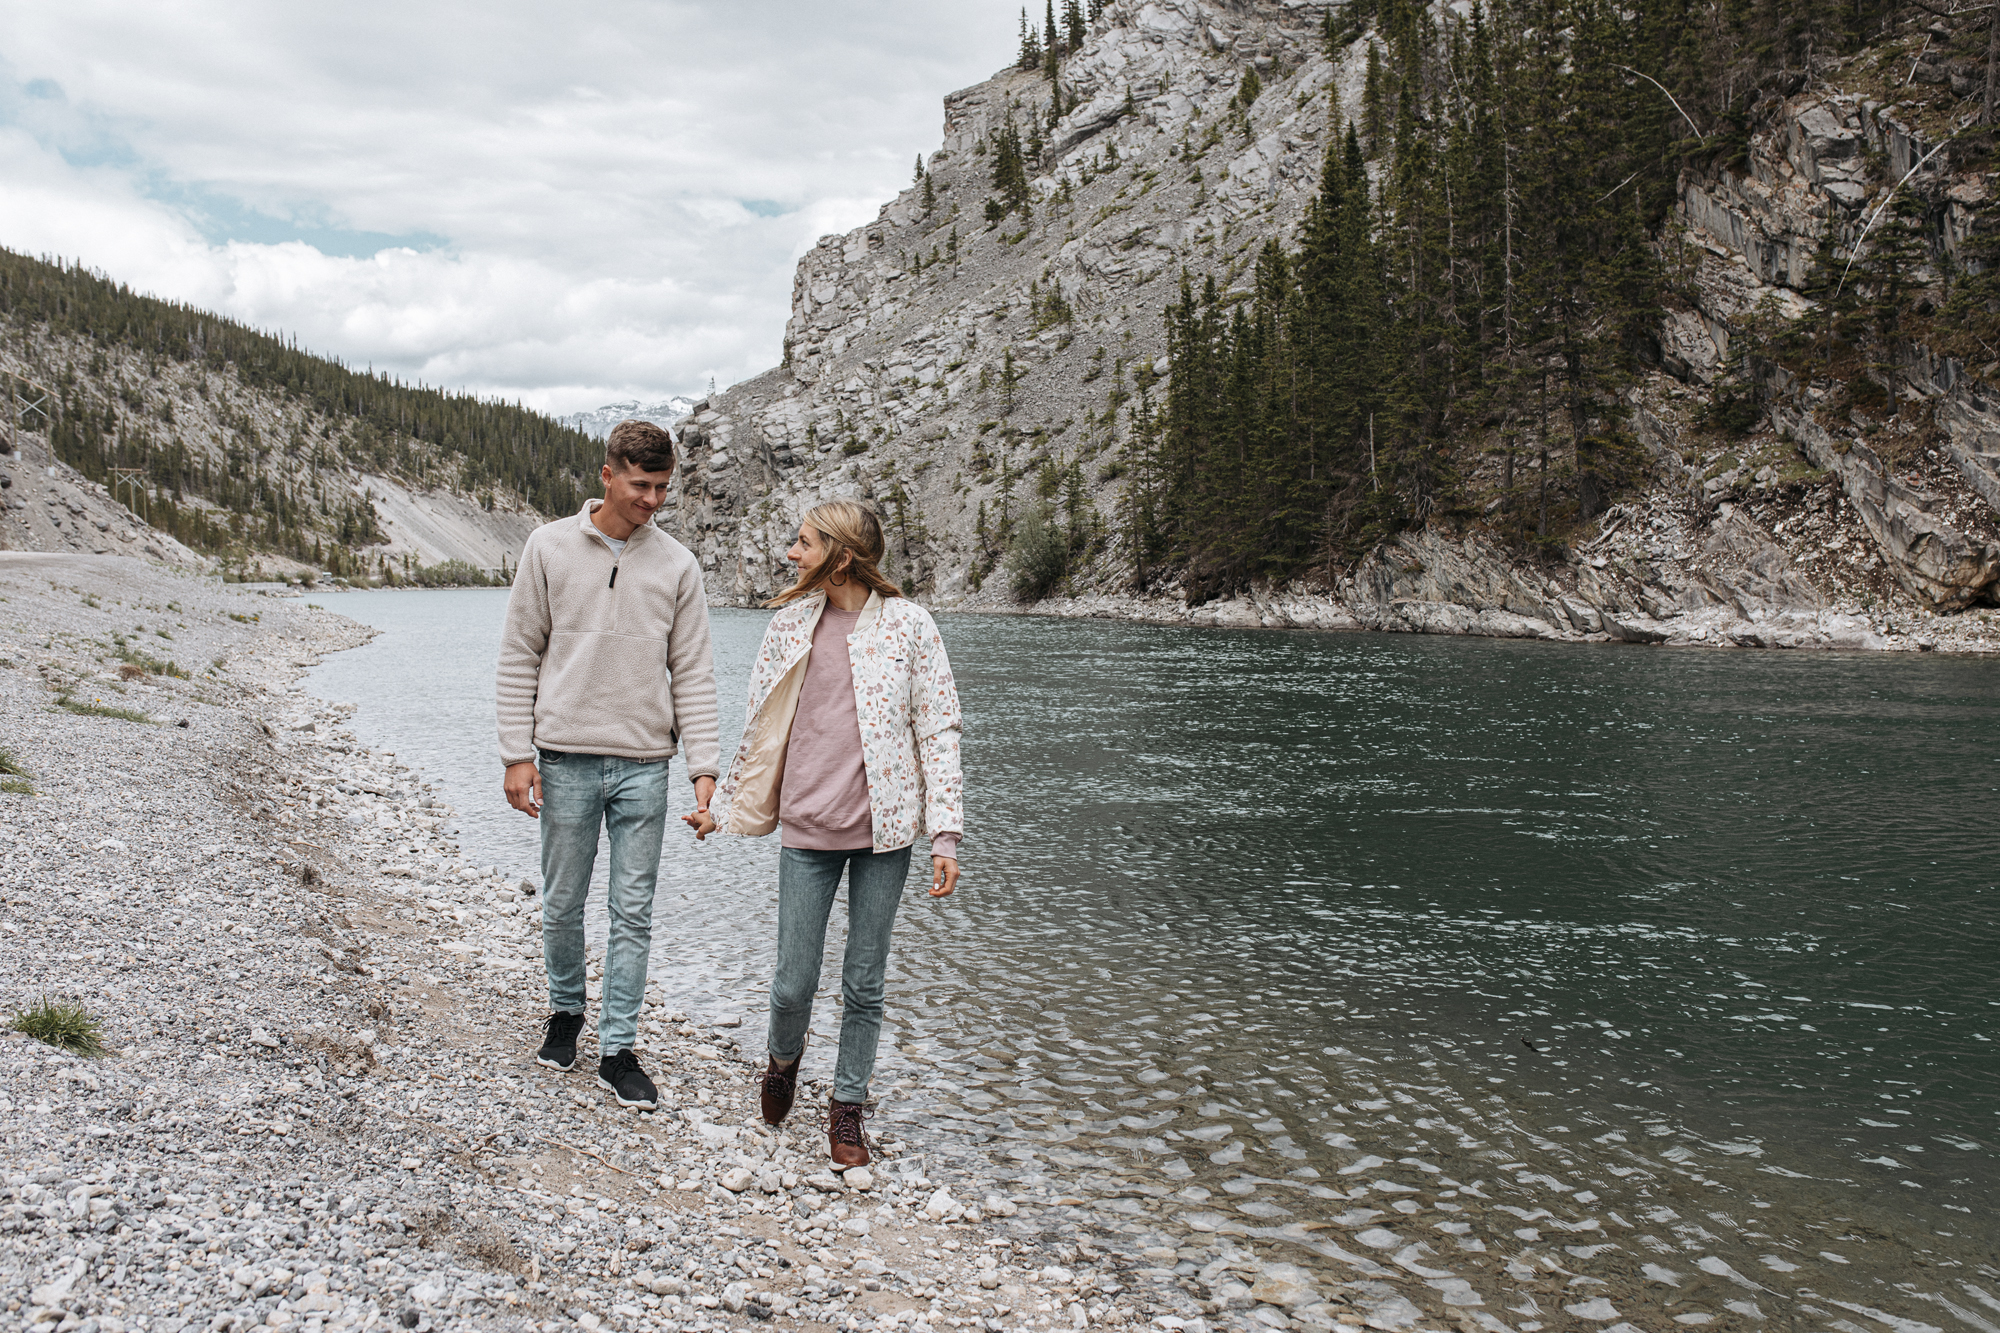 Hike or walk through Lake Louise and Banff, Canada with this travel guide from creative lifestyle blogger emily r hess